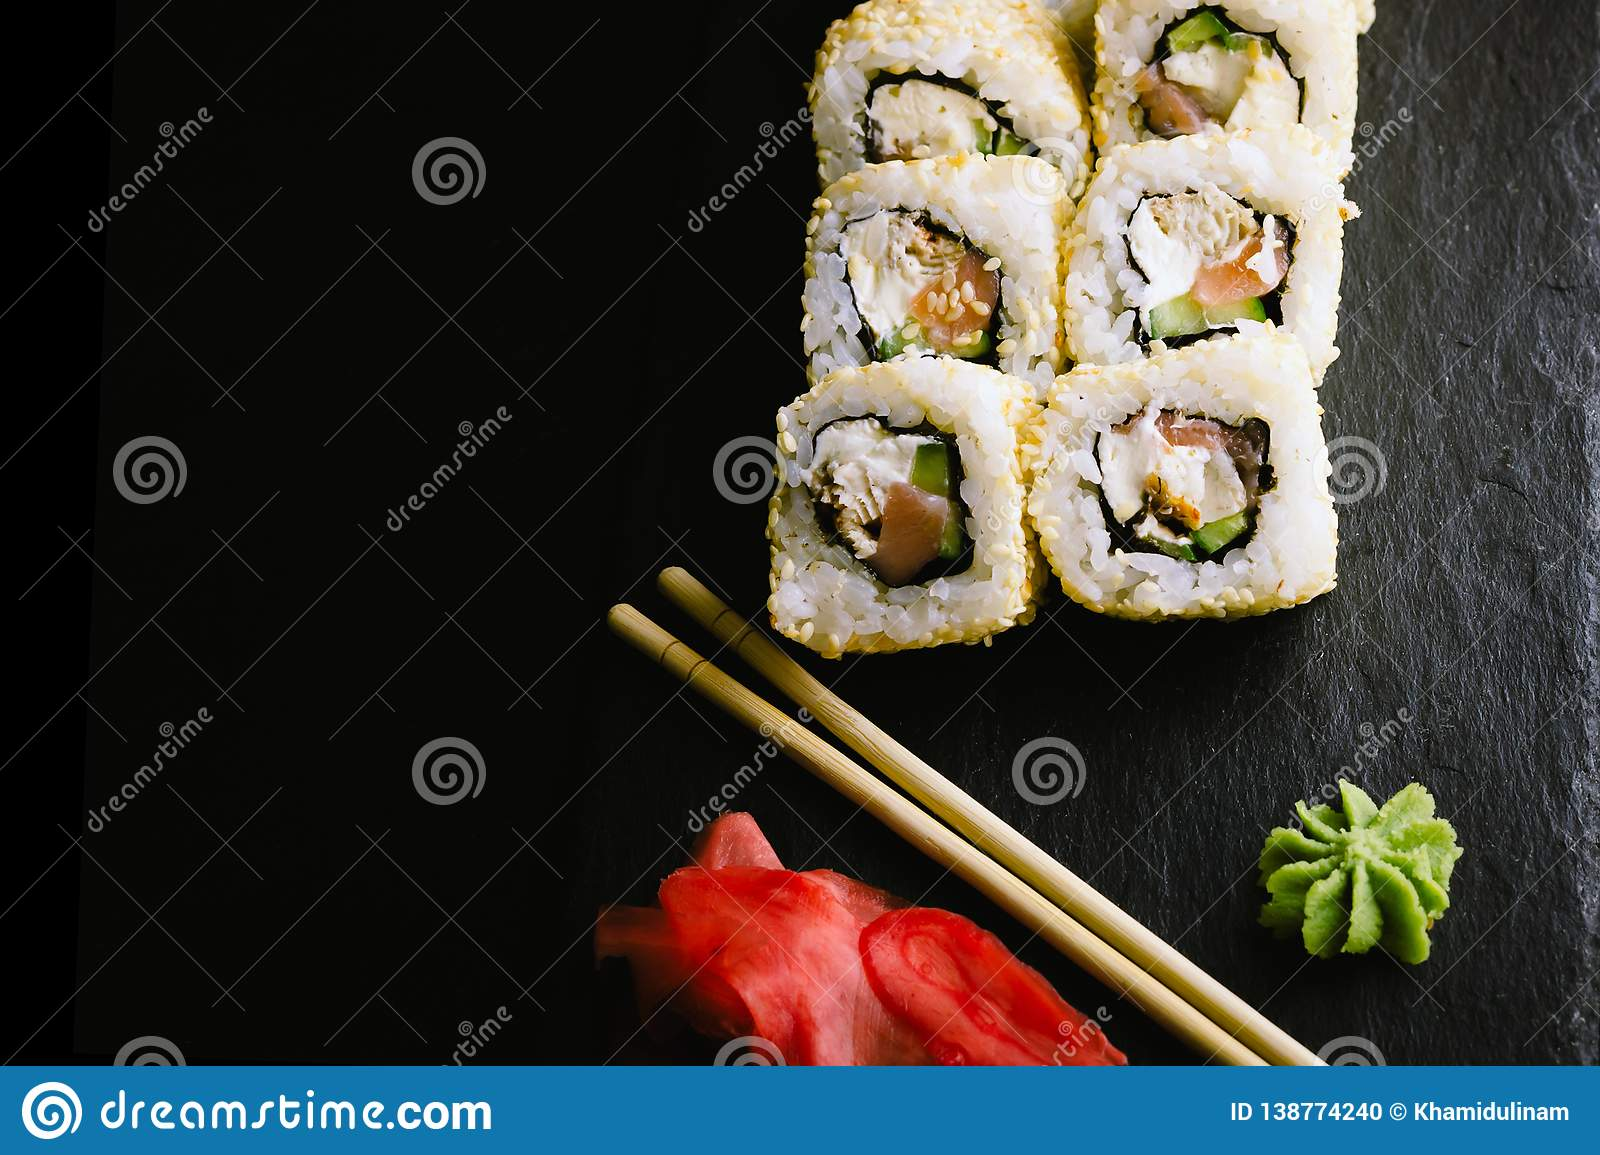 Sushi Rolls On Black Plate Stock Photo Image Of Snack